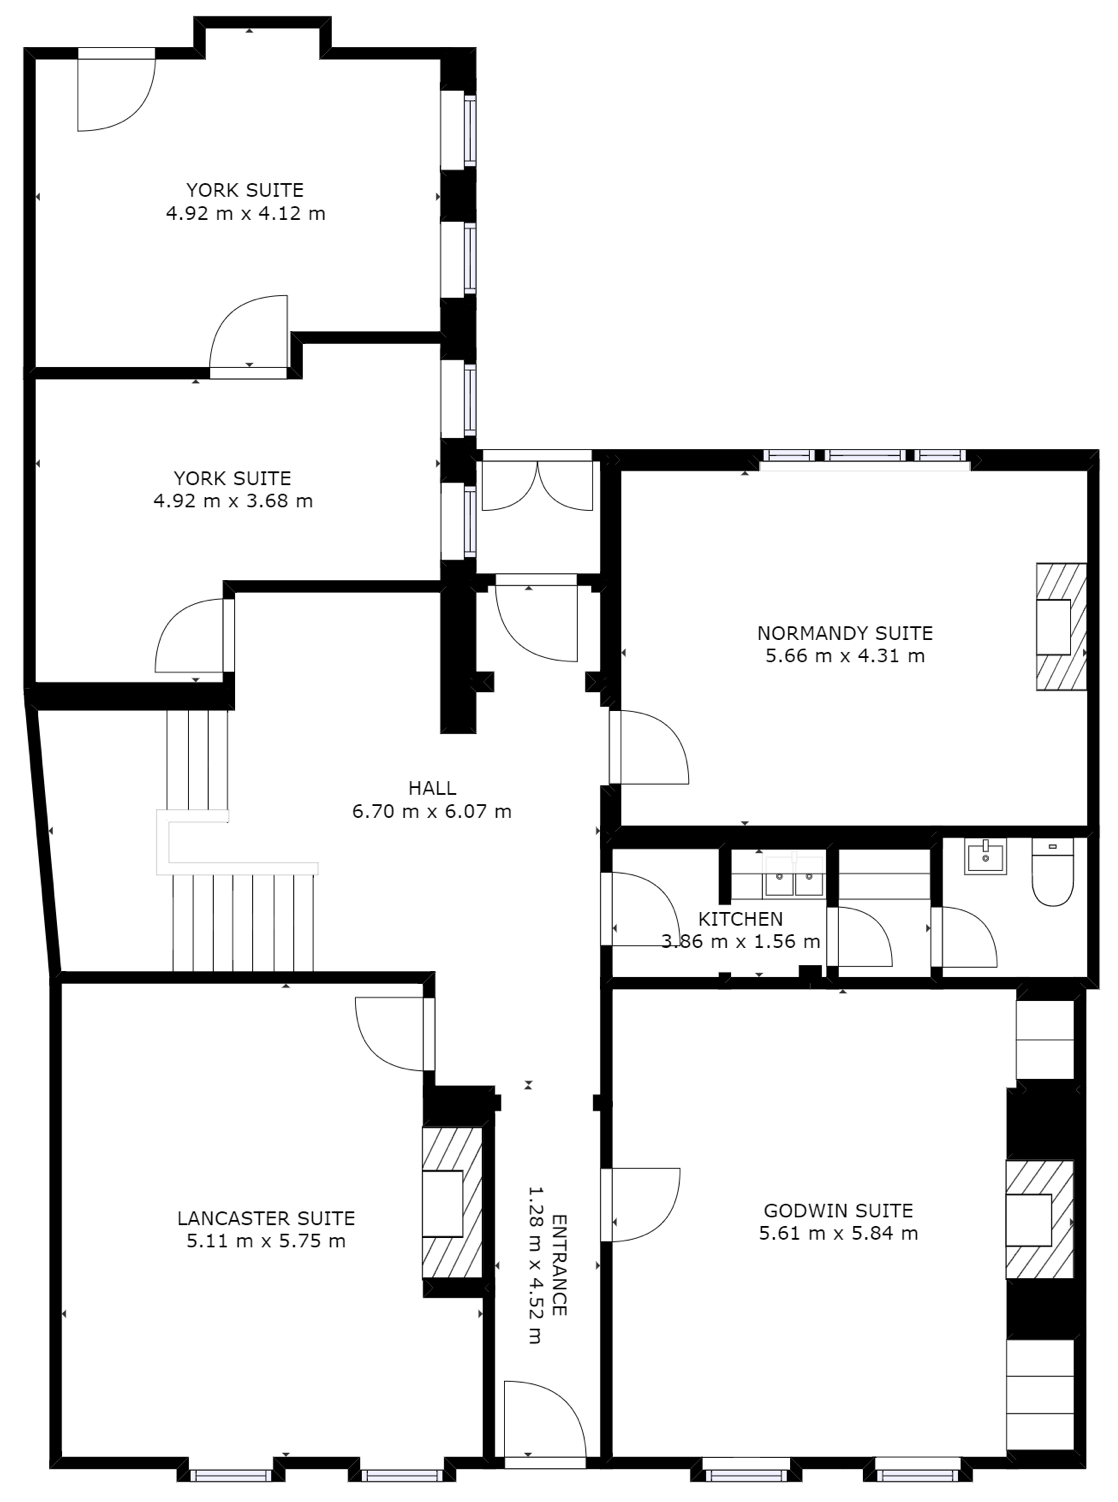 Ground floor plan of offices at Beaconsfield location, Kings Head House